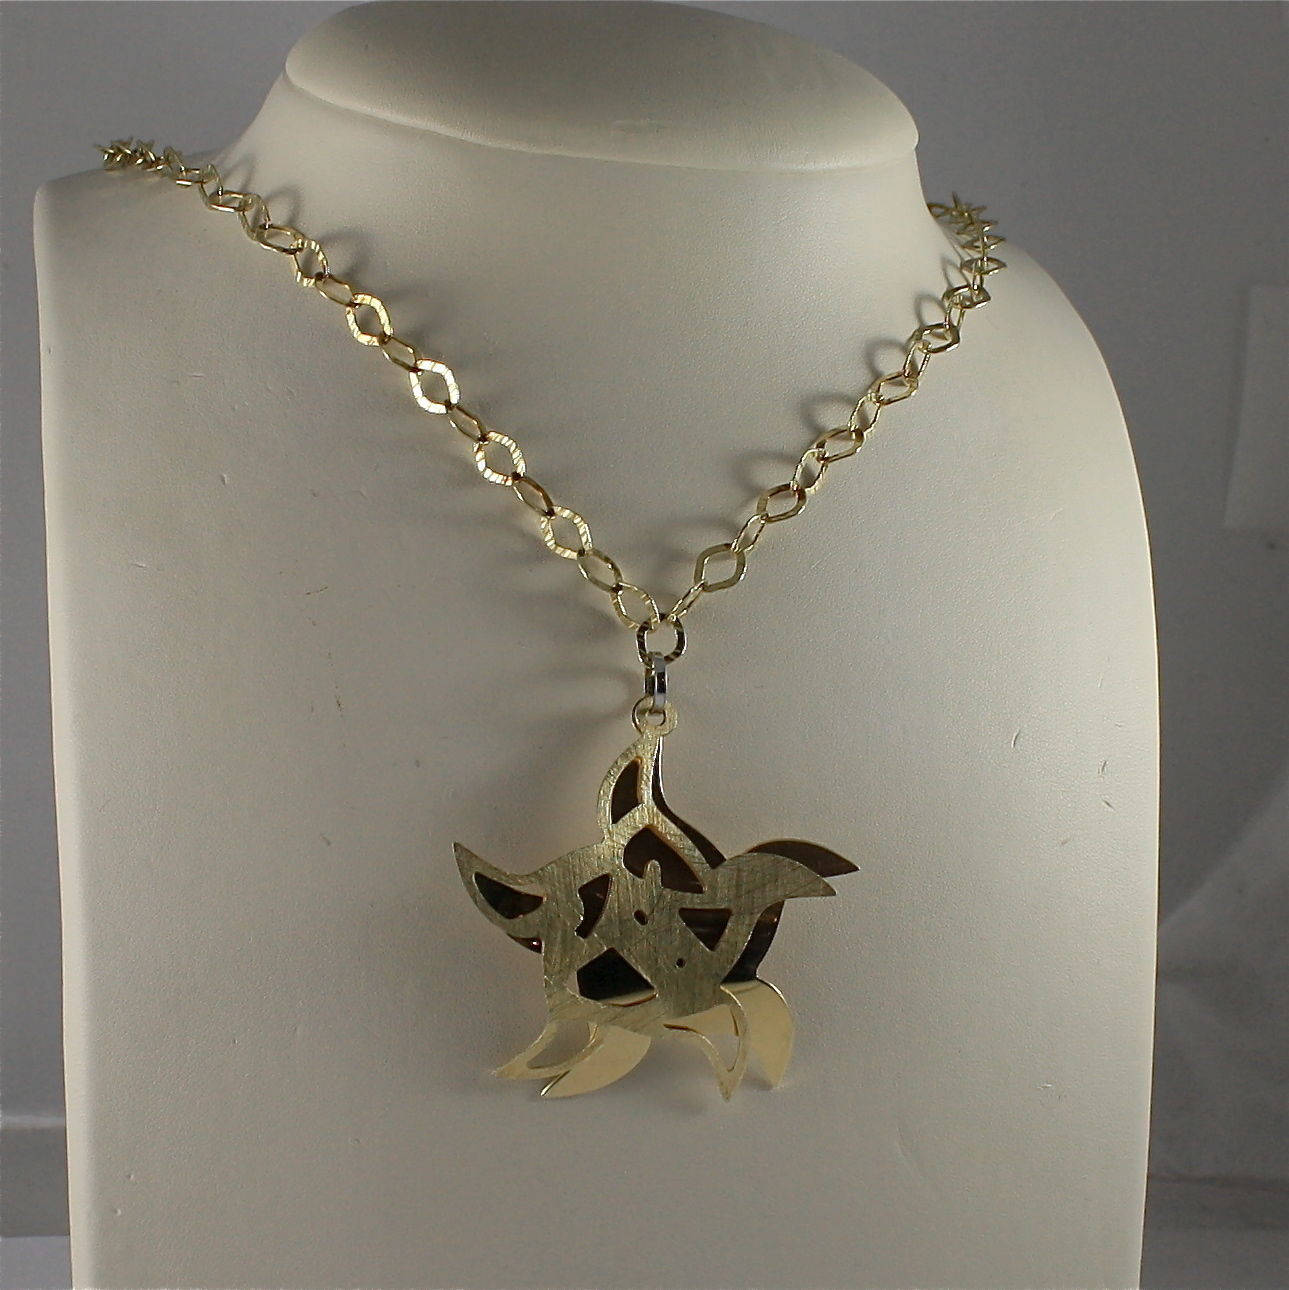 .925 SILVER, GOLD PLT NECKLACE, 17,32 In, CHAIN MESH, DOUBLE STYLIZED STARS.